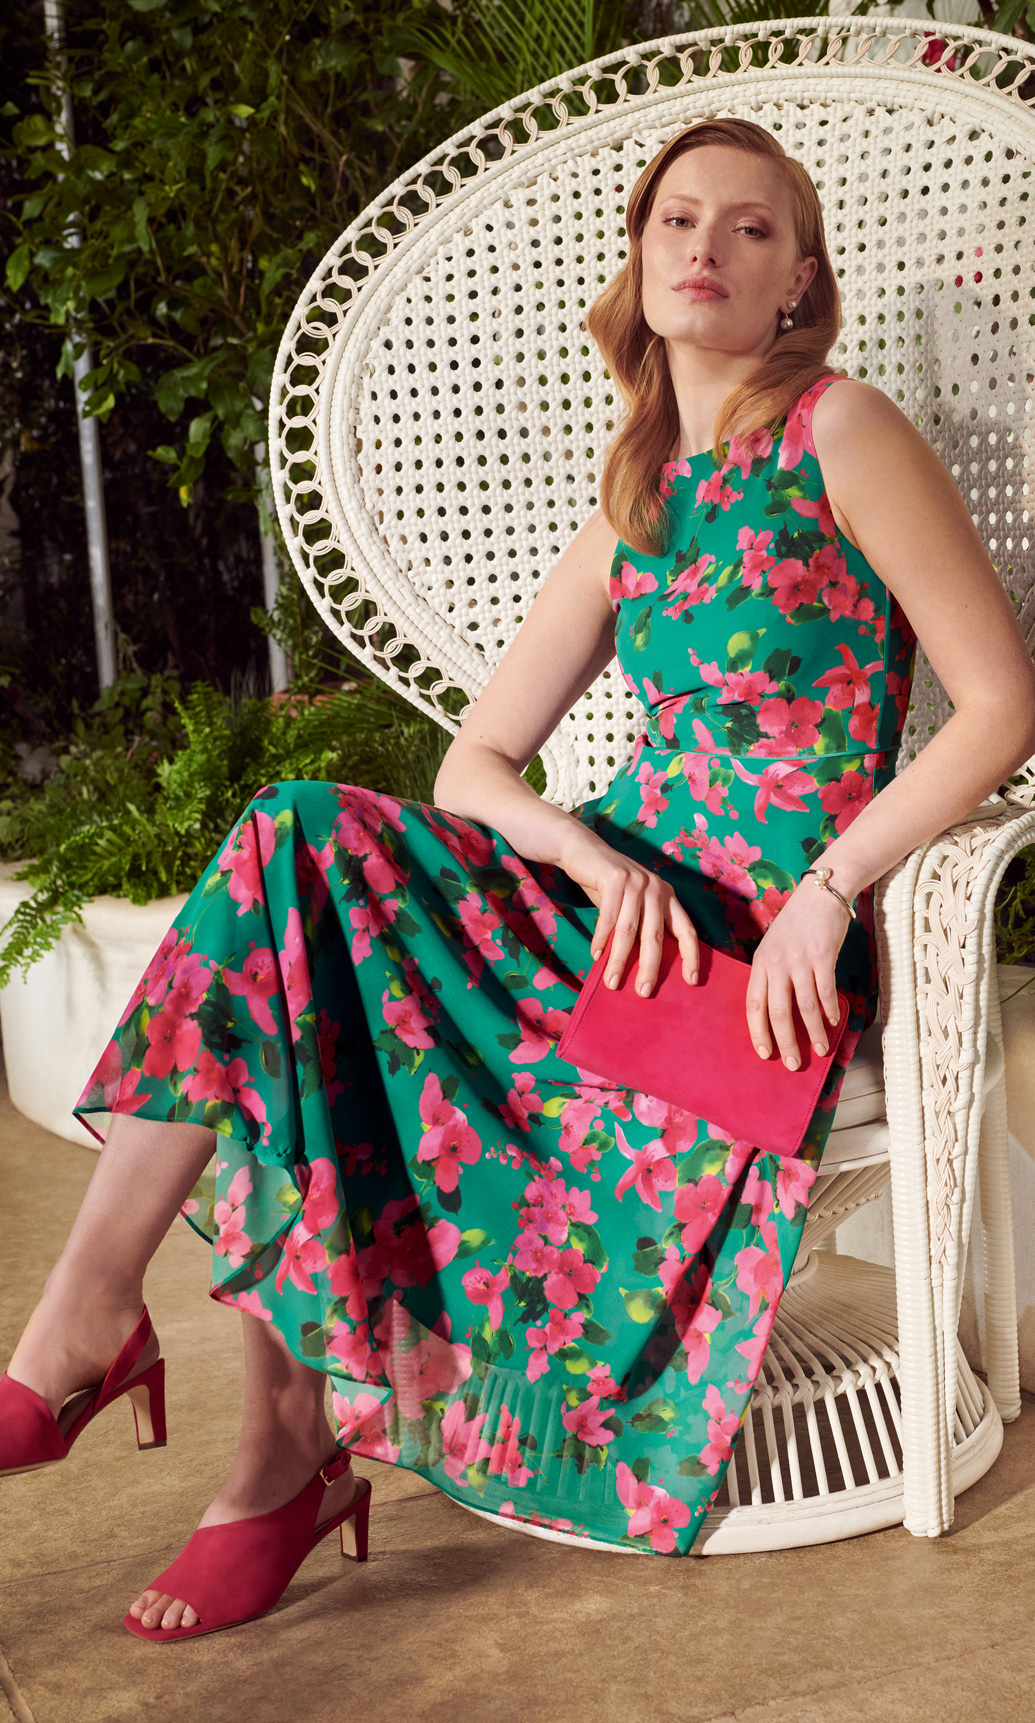 Model wearing a floral print midi dress and heels sits on a white peacock chair.